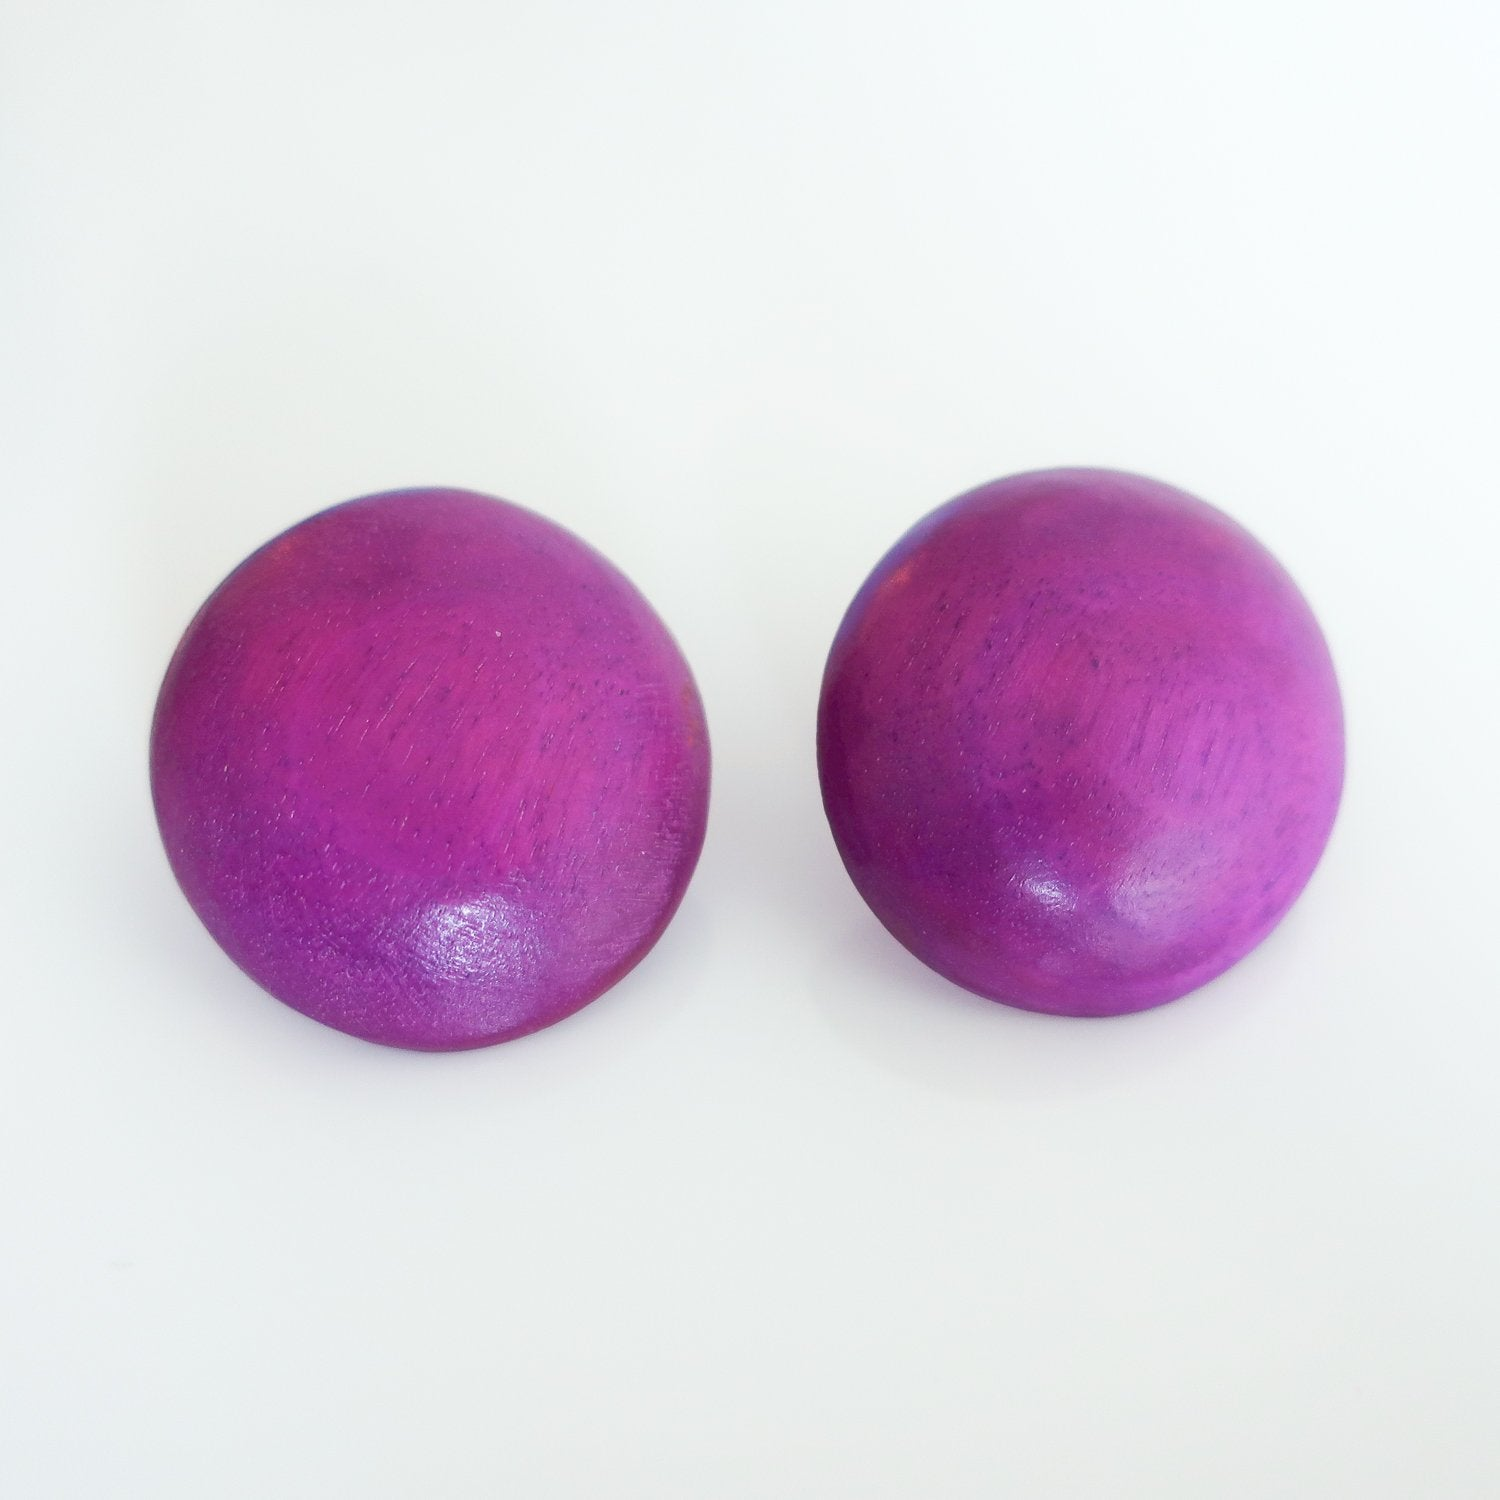 "Second Room Vintage Clothing. Vintage purple wood stud earrings, that look hand crafted and are not perfectly symmetrical. You can also slightly see the wood grain through the painted finish. Earrings are approximately 1.25"" across. Free North American shipping on all orders."